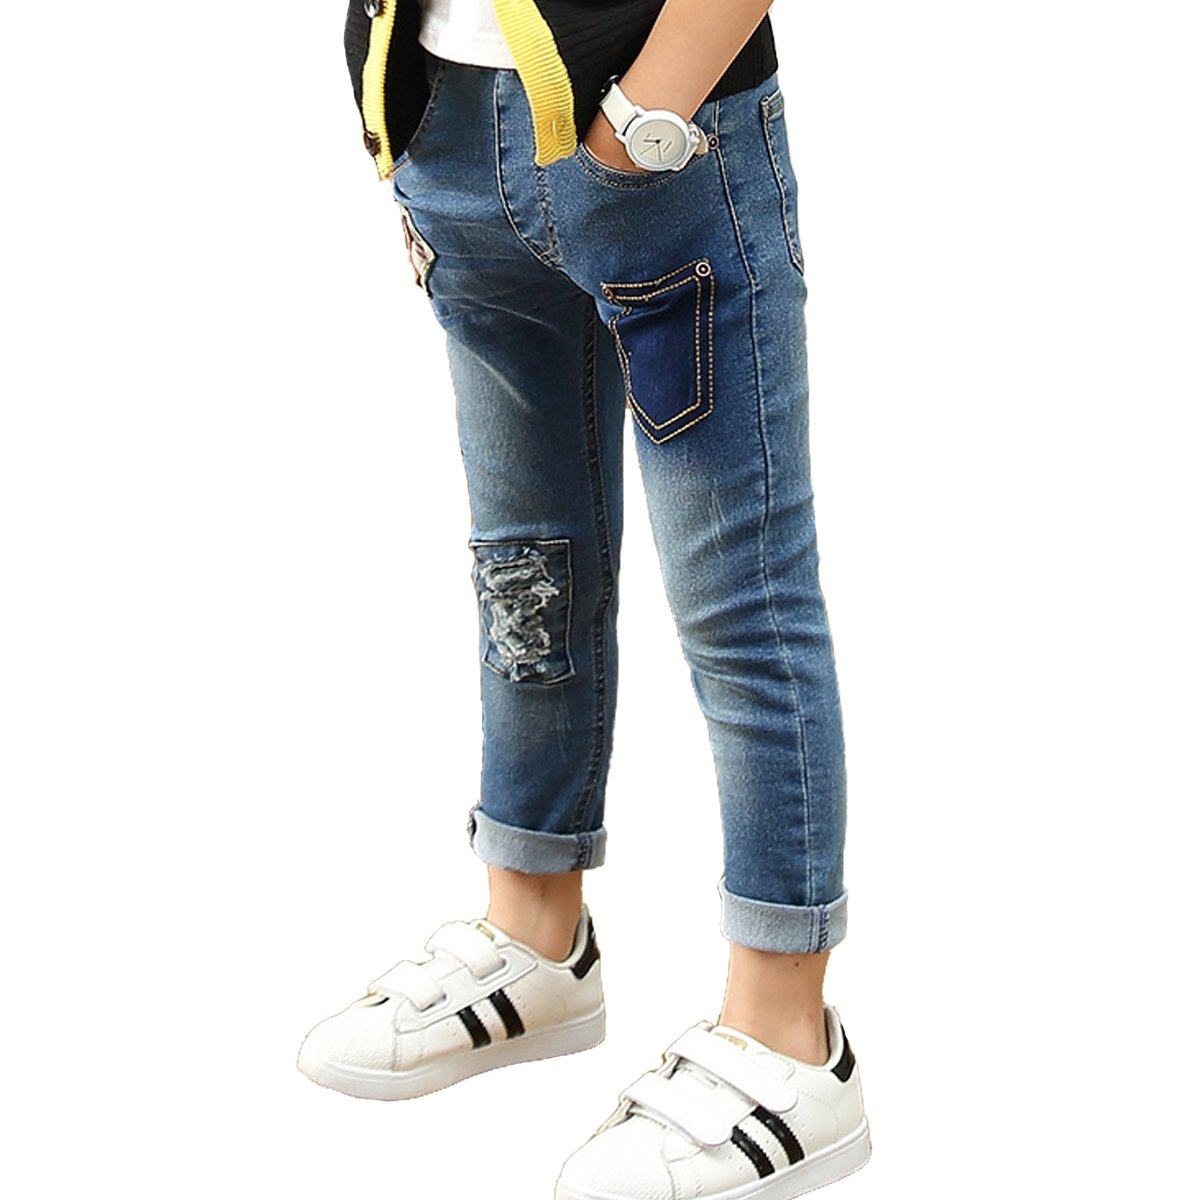 OnlyAngel Boys Slim Fitted Ripped Denim Pants Elasitc Waist Stretch Jeans Age 4-11